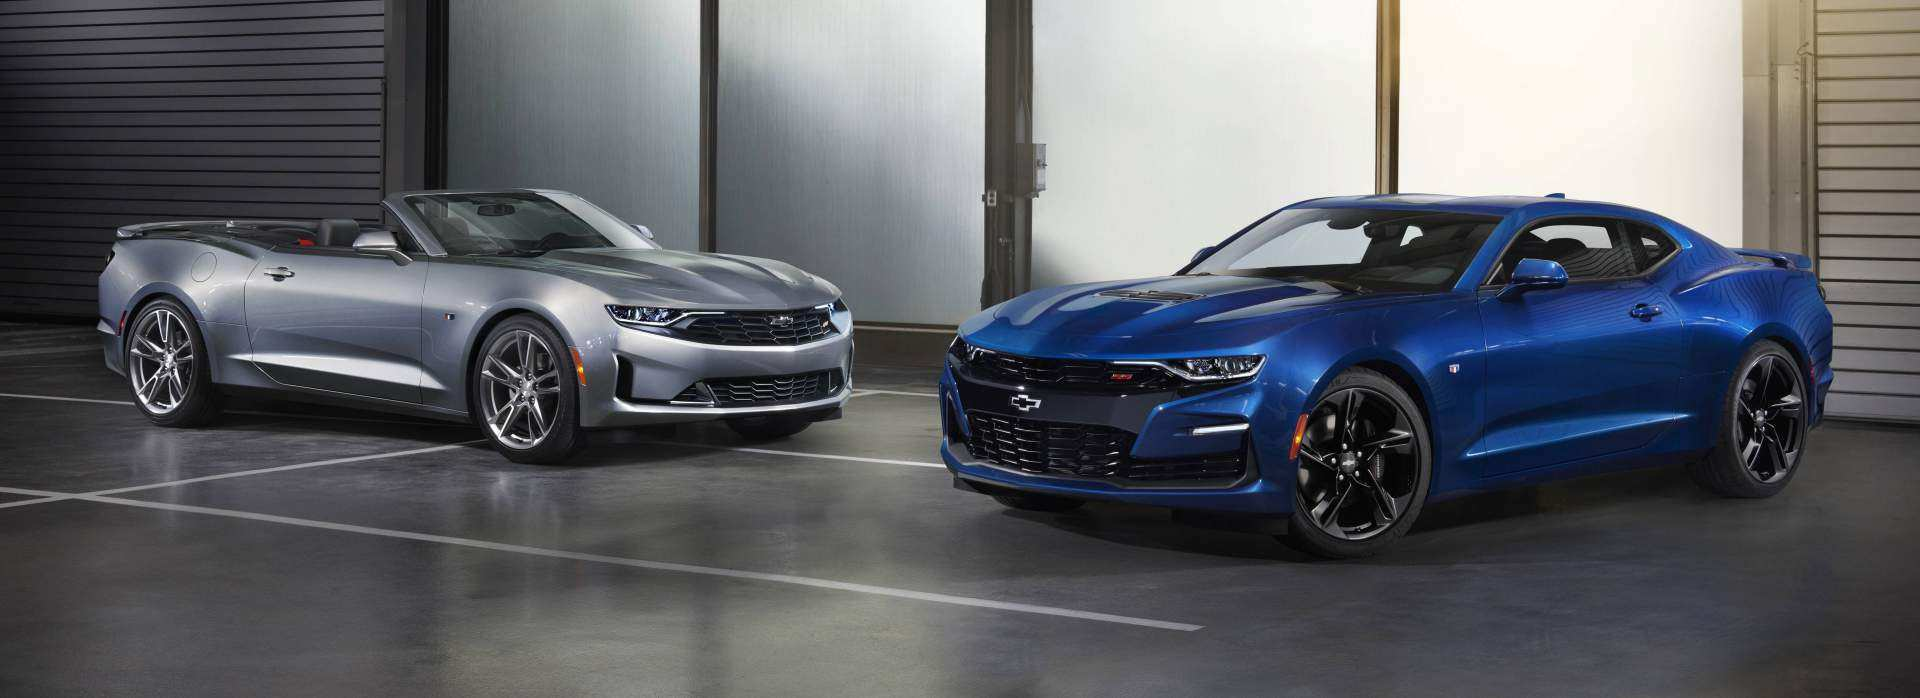 51 New Chevrolet Concept Cars 2020 Ratings with Chevrolet Concept Cars 2020